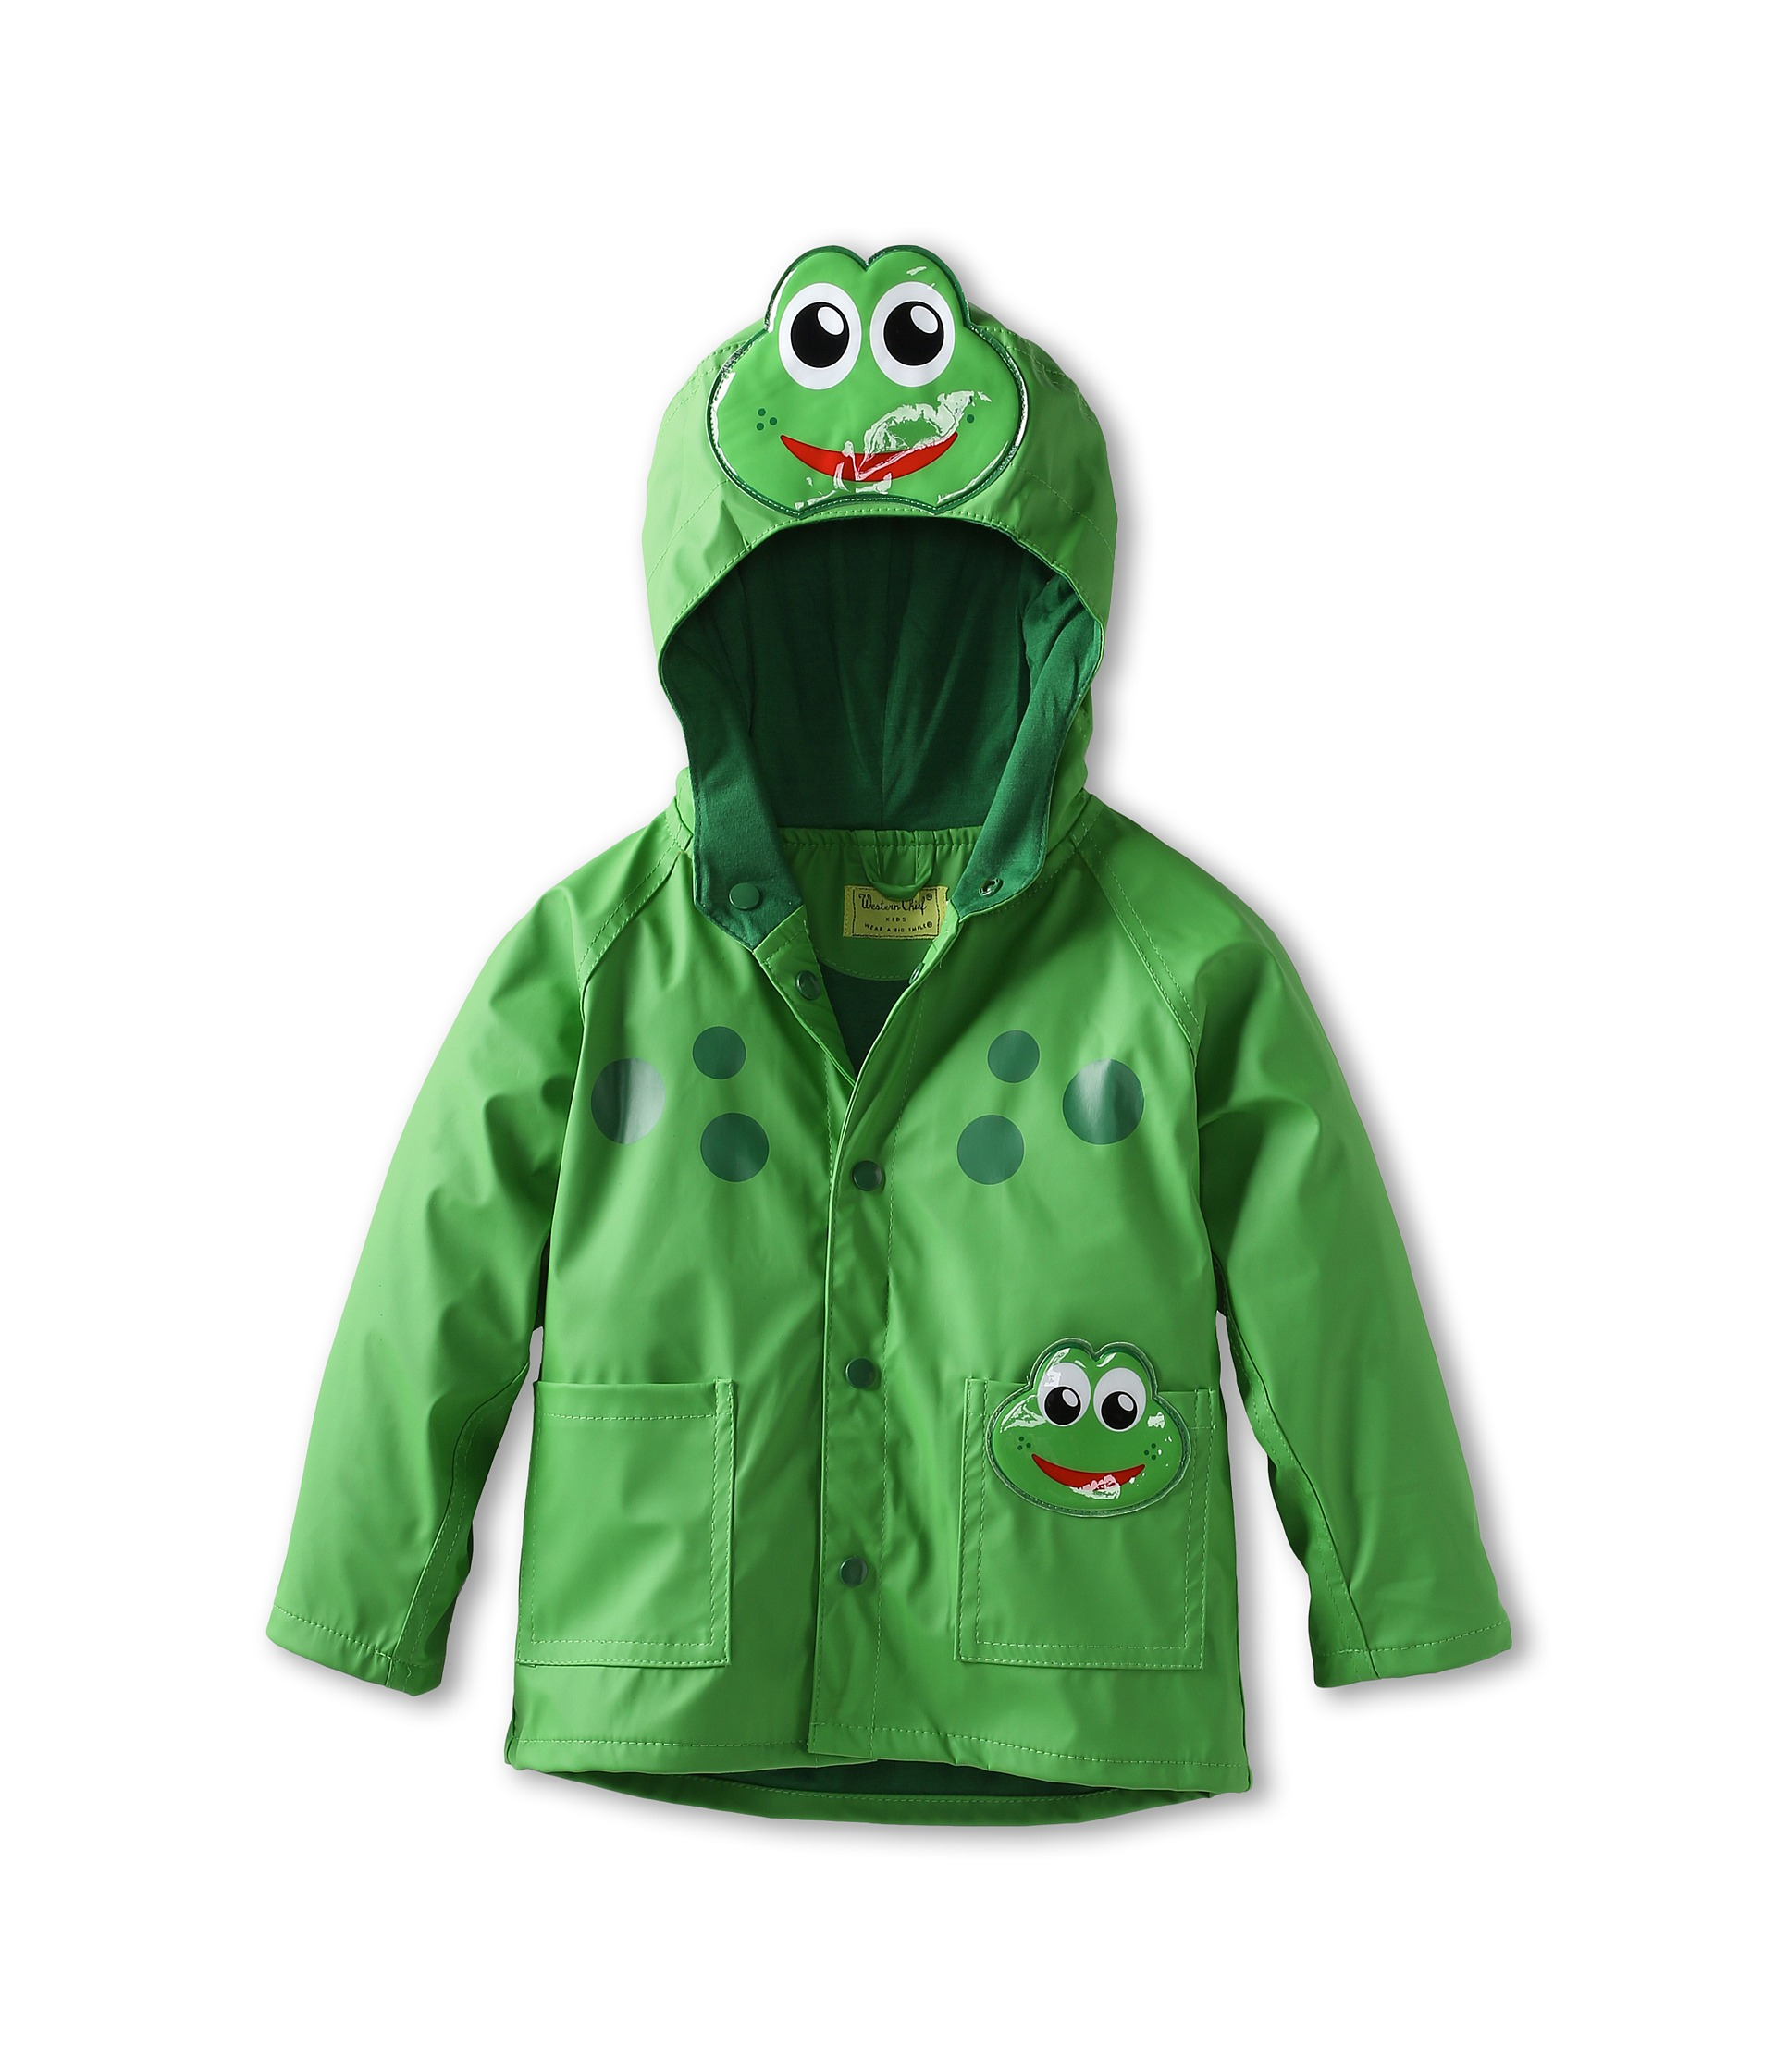 Western Chief Kids Frog Raincoat (Toddler/Little Kids) at Zappos.com